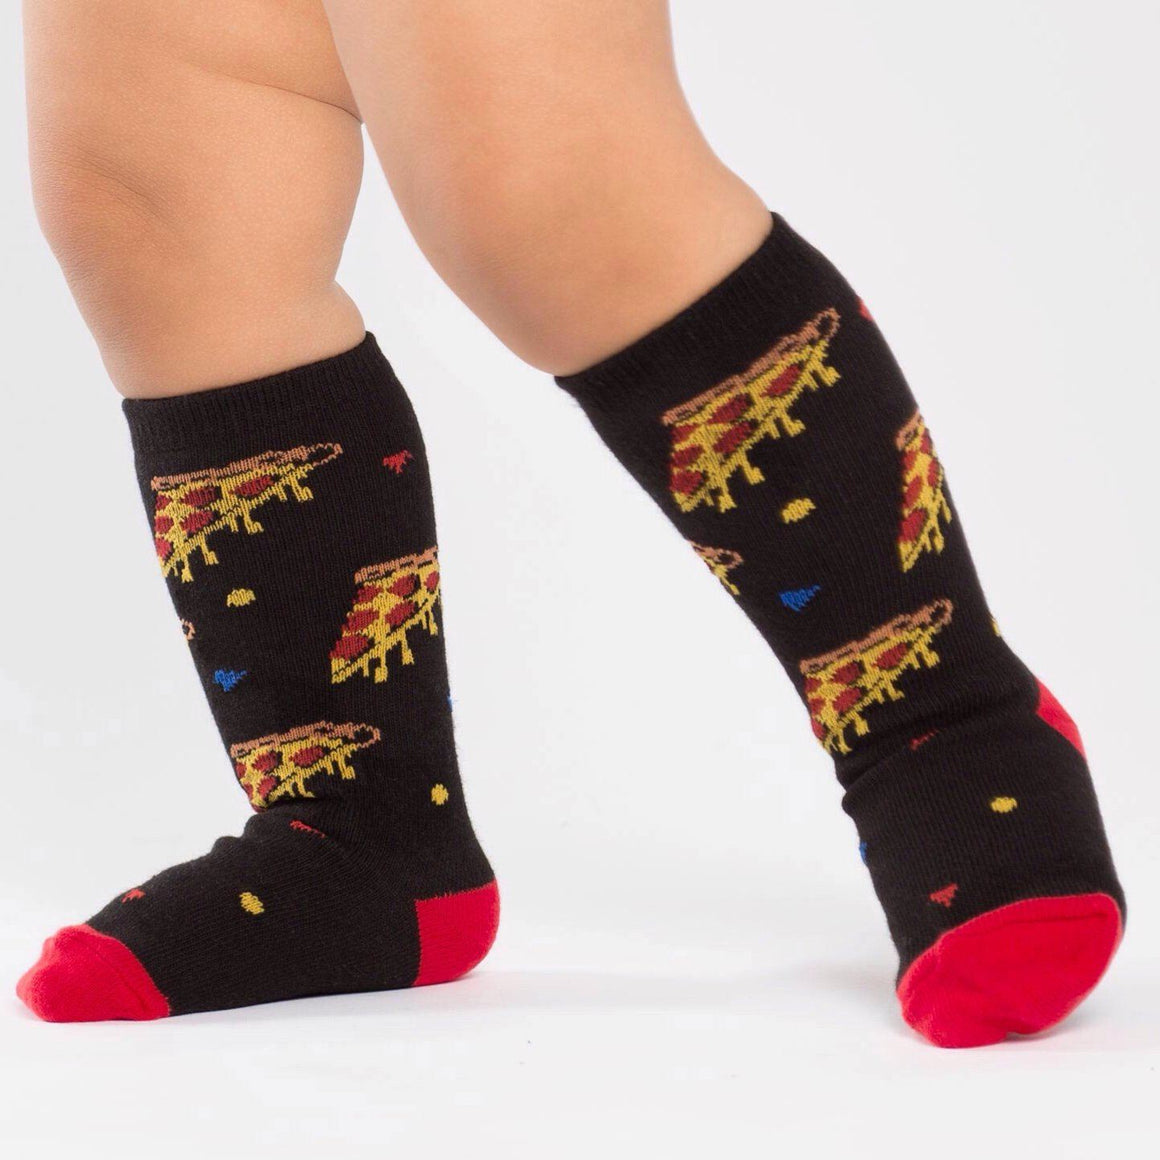 SOCKS - TODDLER KNEE PIZZA PARTY, SOCKS, SOCK IT TO ME - Bon + Co. Party Studio